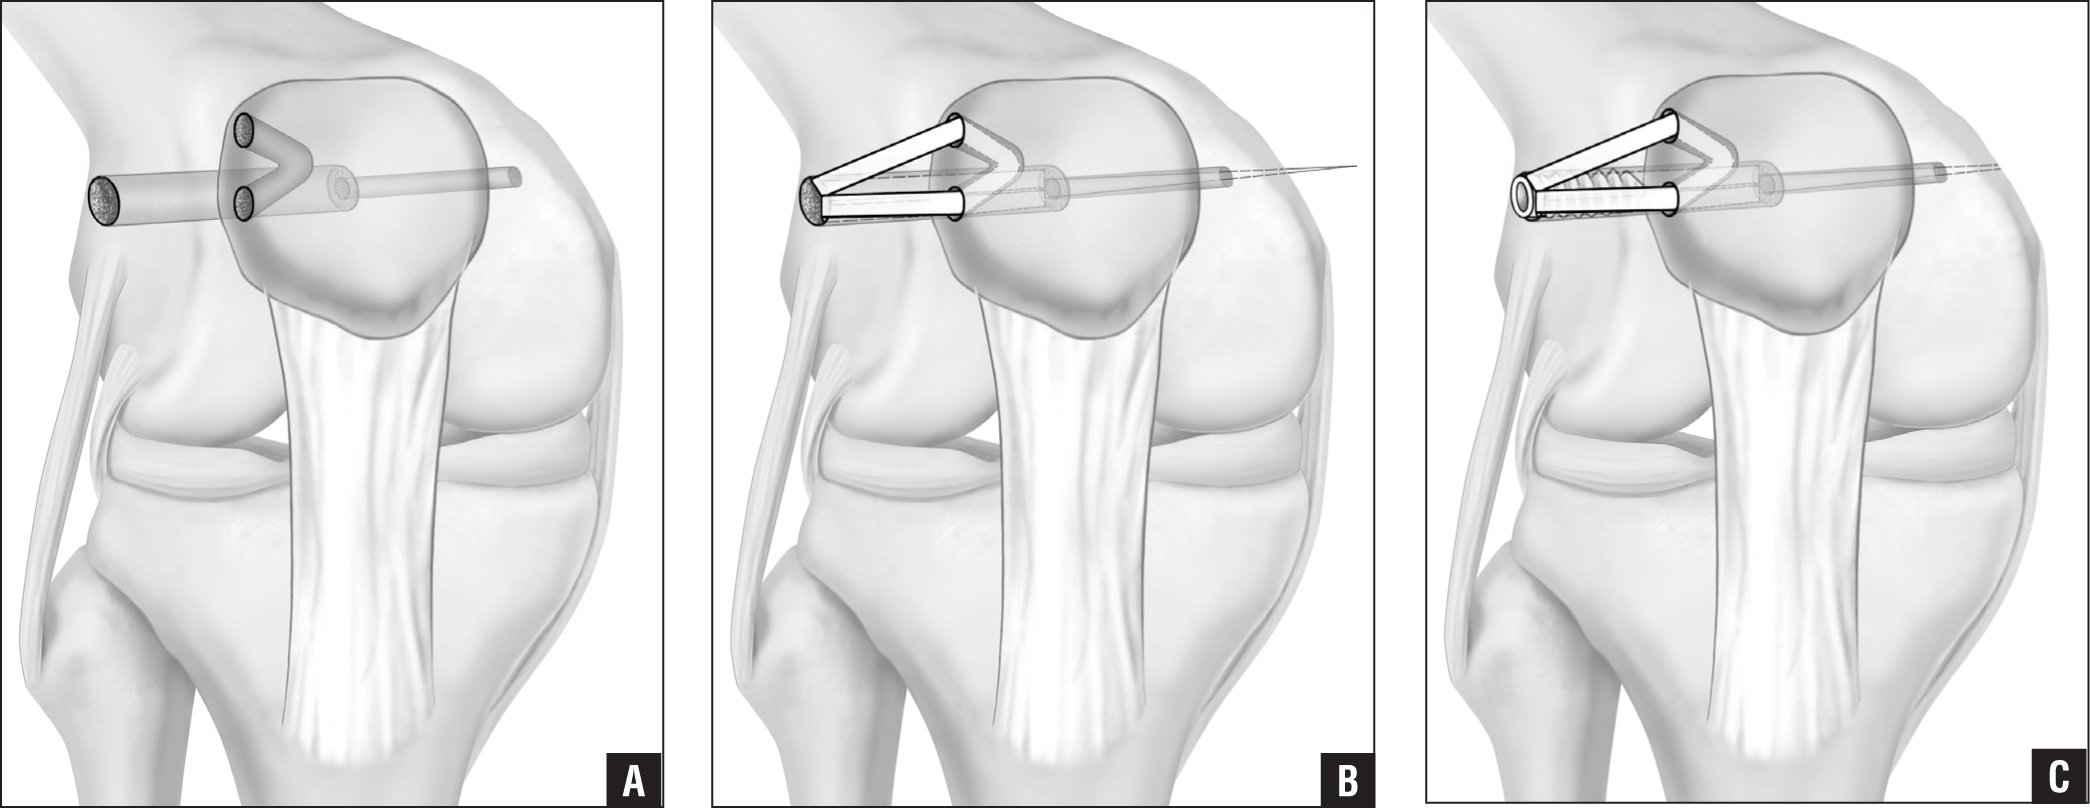 Lateral Patellofemoral Ligament Reconstruction Using A Free Gracilis